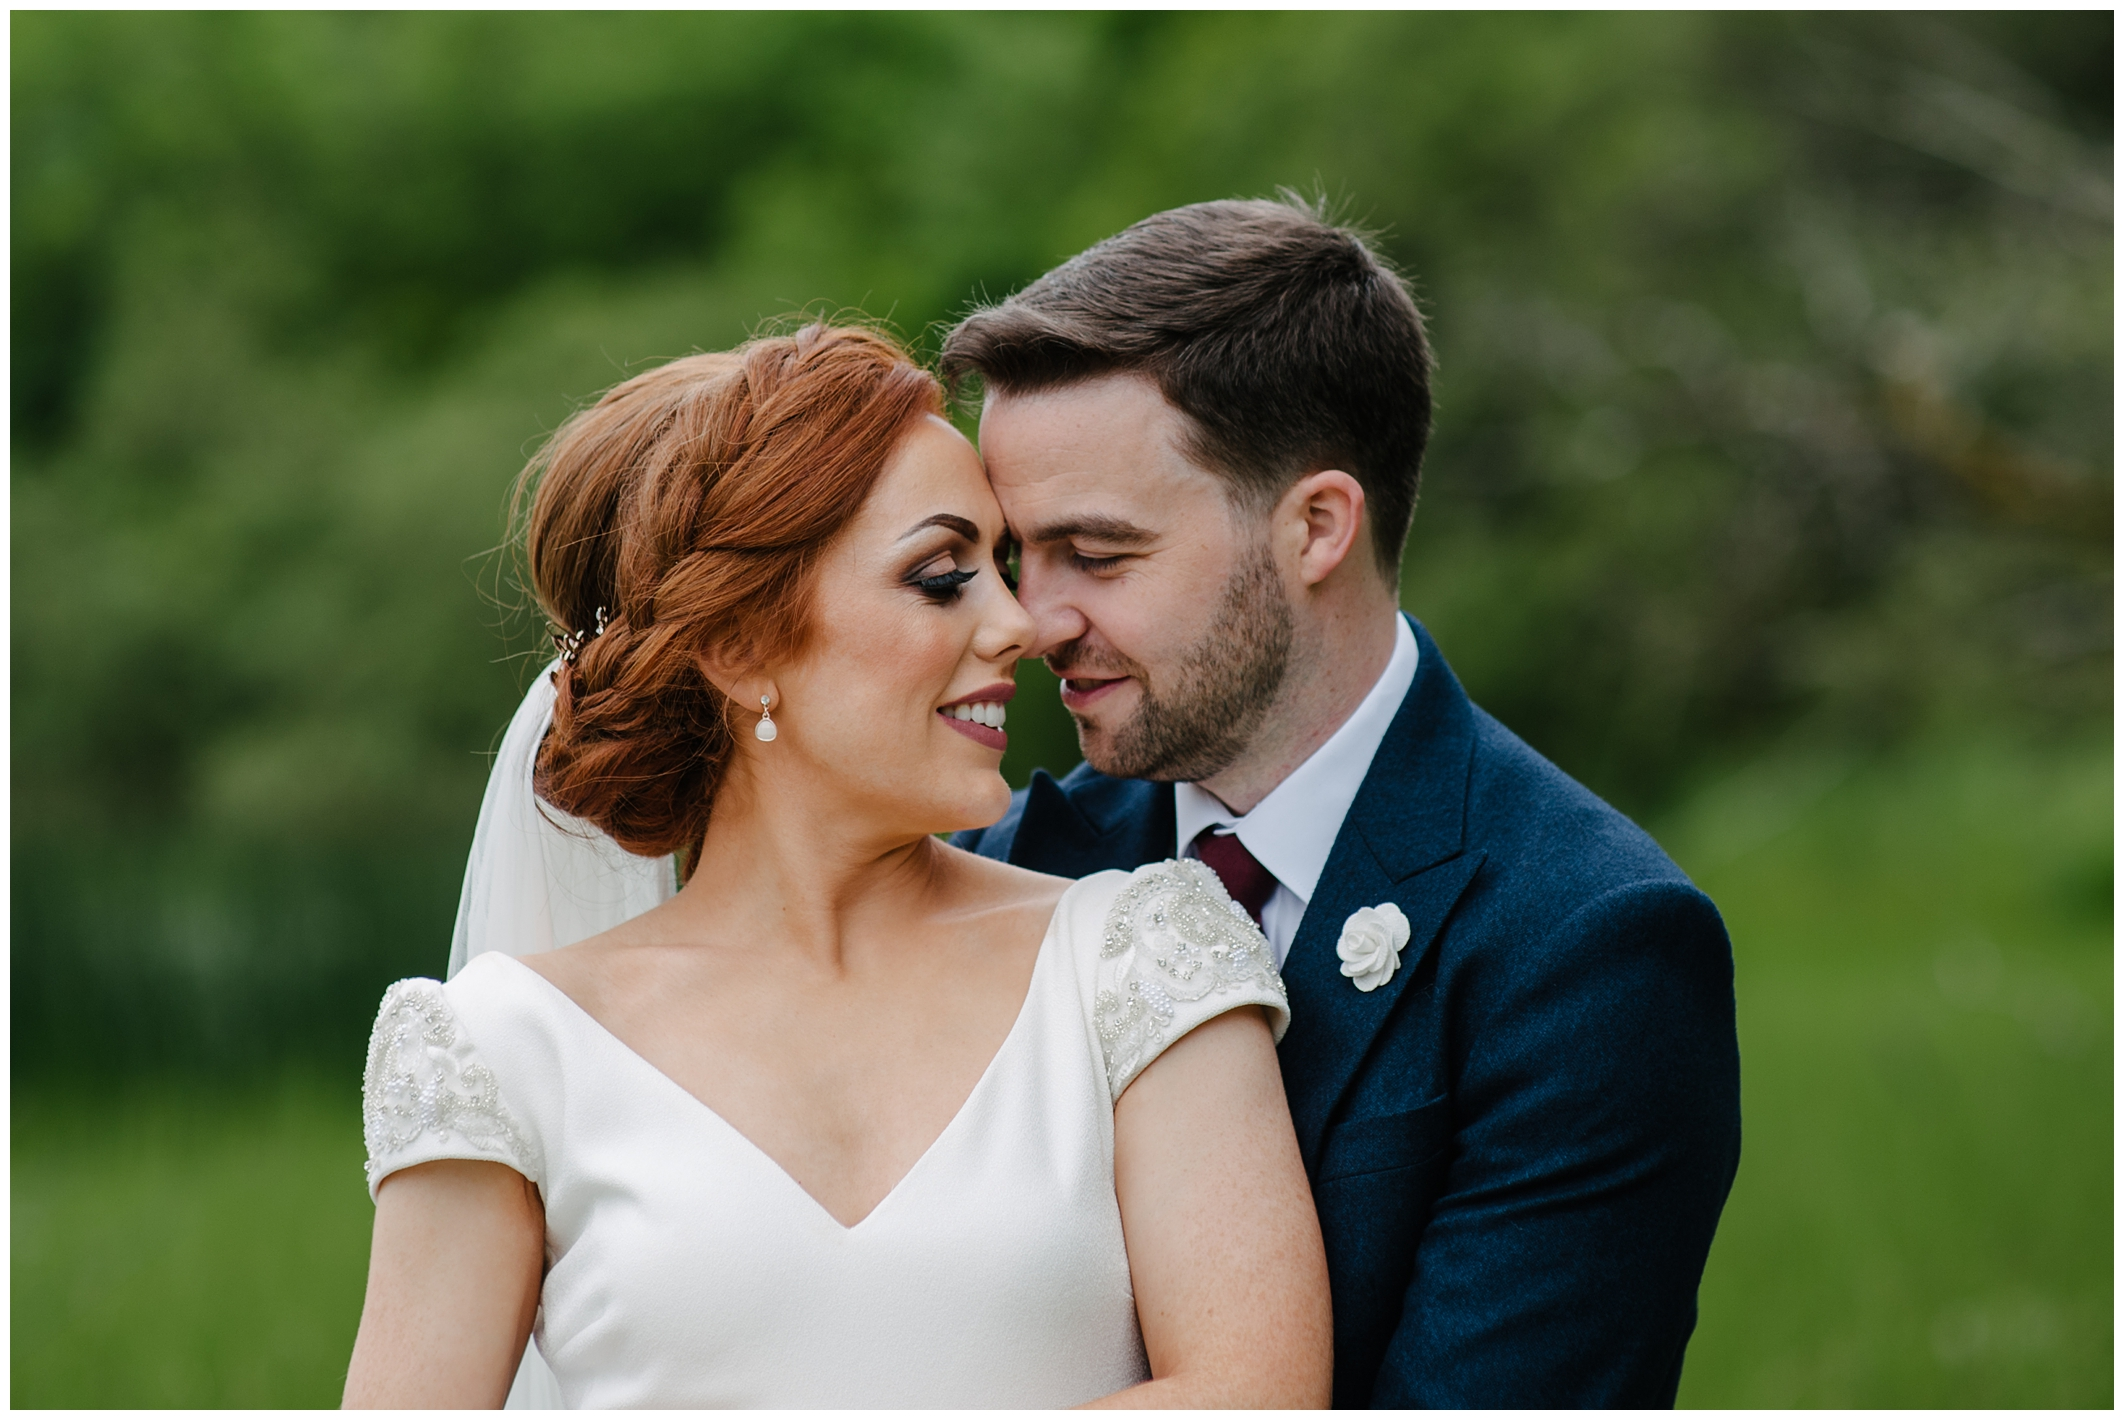 sinead_emmet_farnham_estate_wedding_jude_browne_photography_0127.jpg